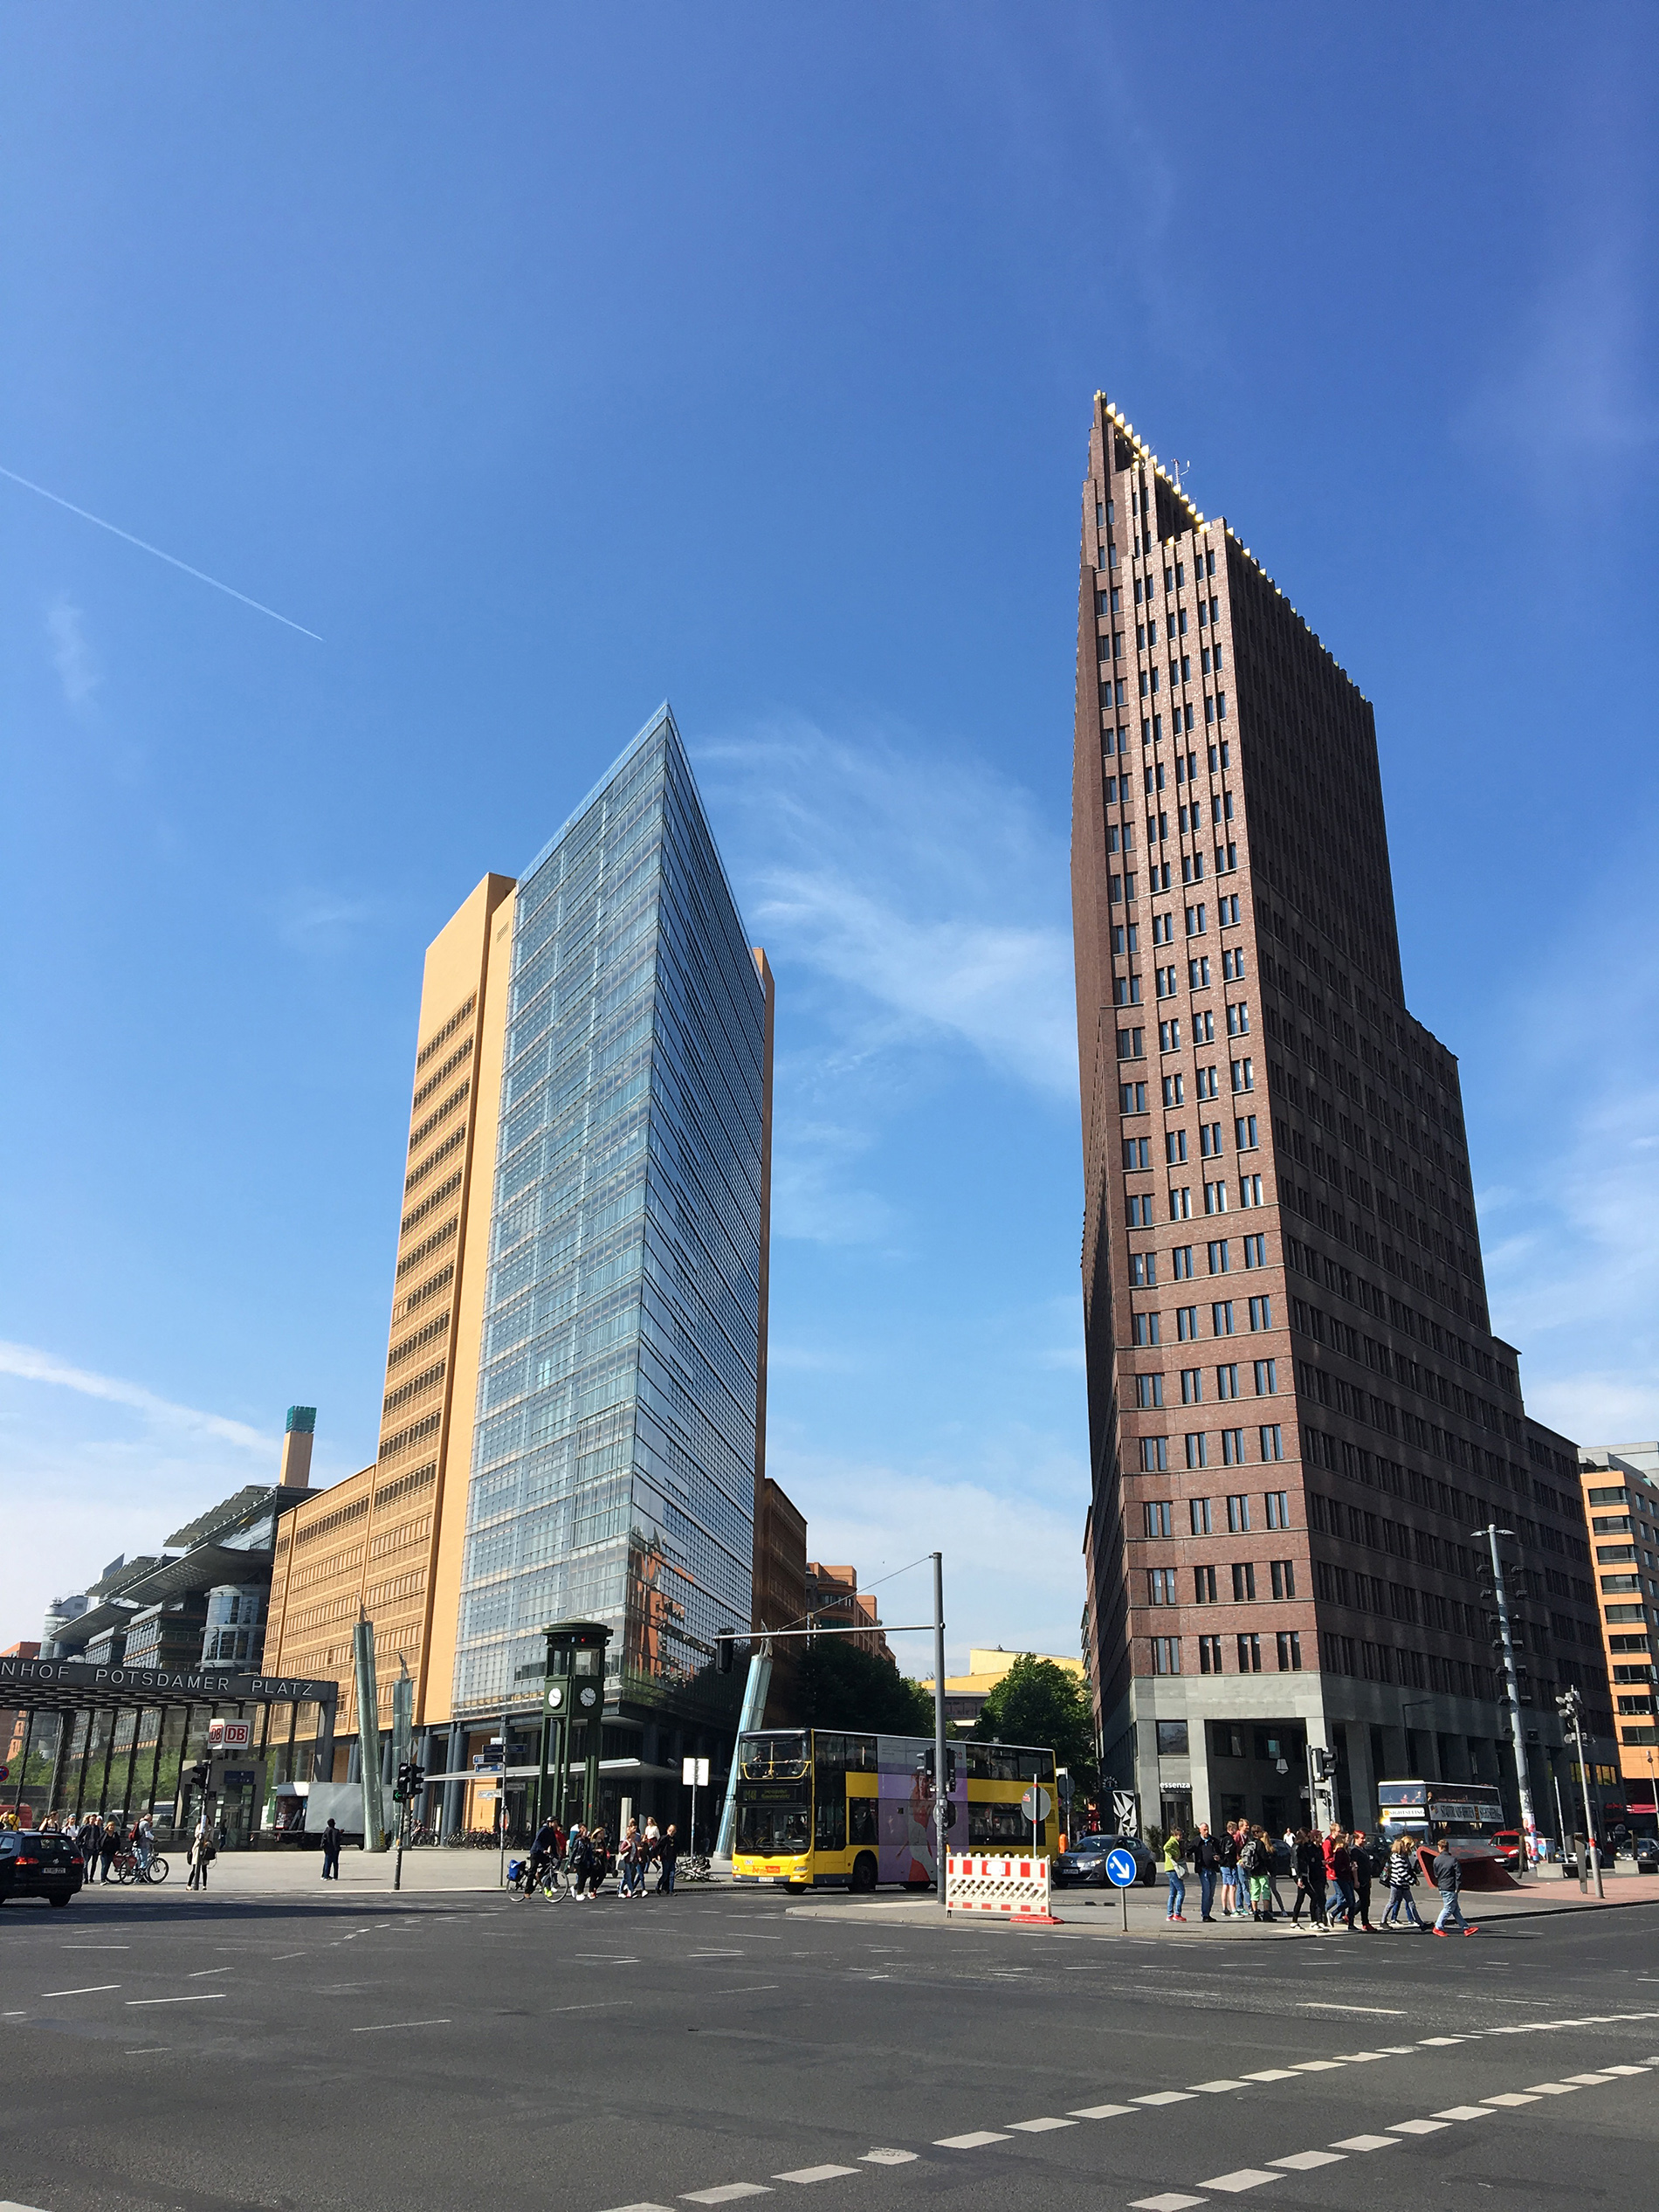 Upward view of the a large brown building that is under a blue sky with a jet stream in the distance